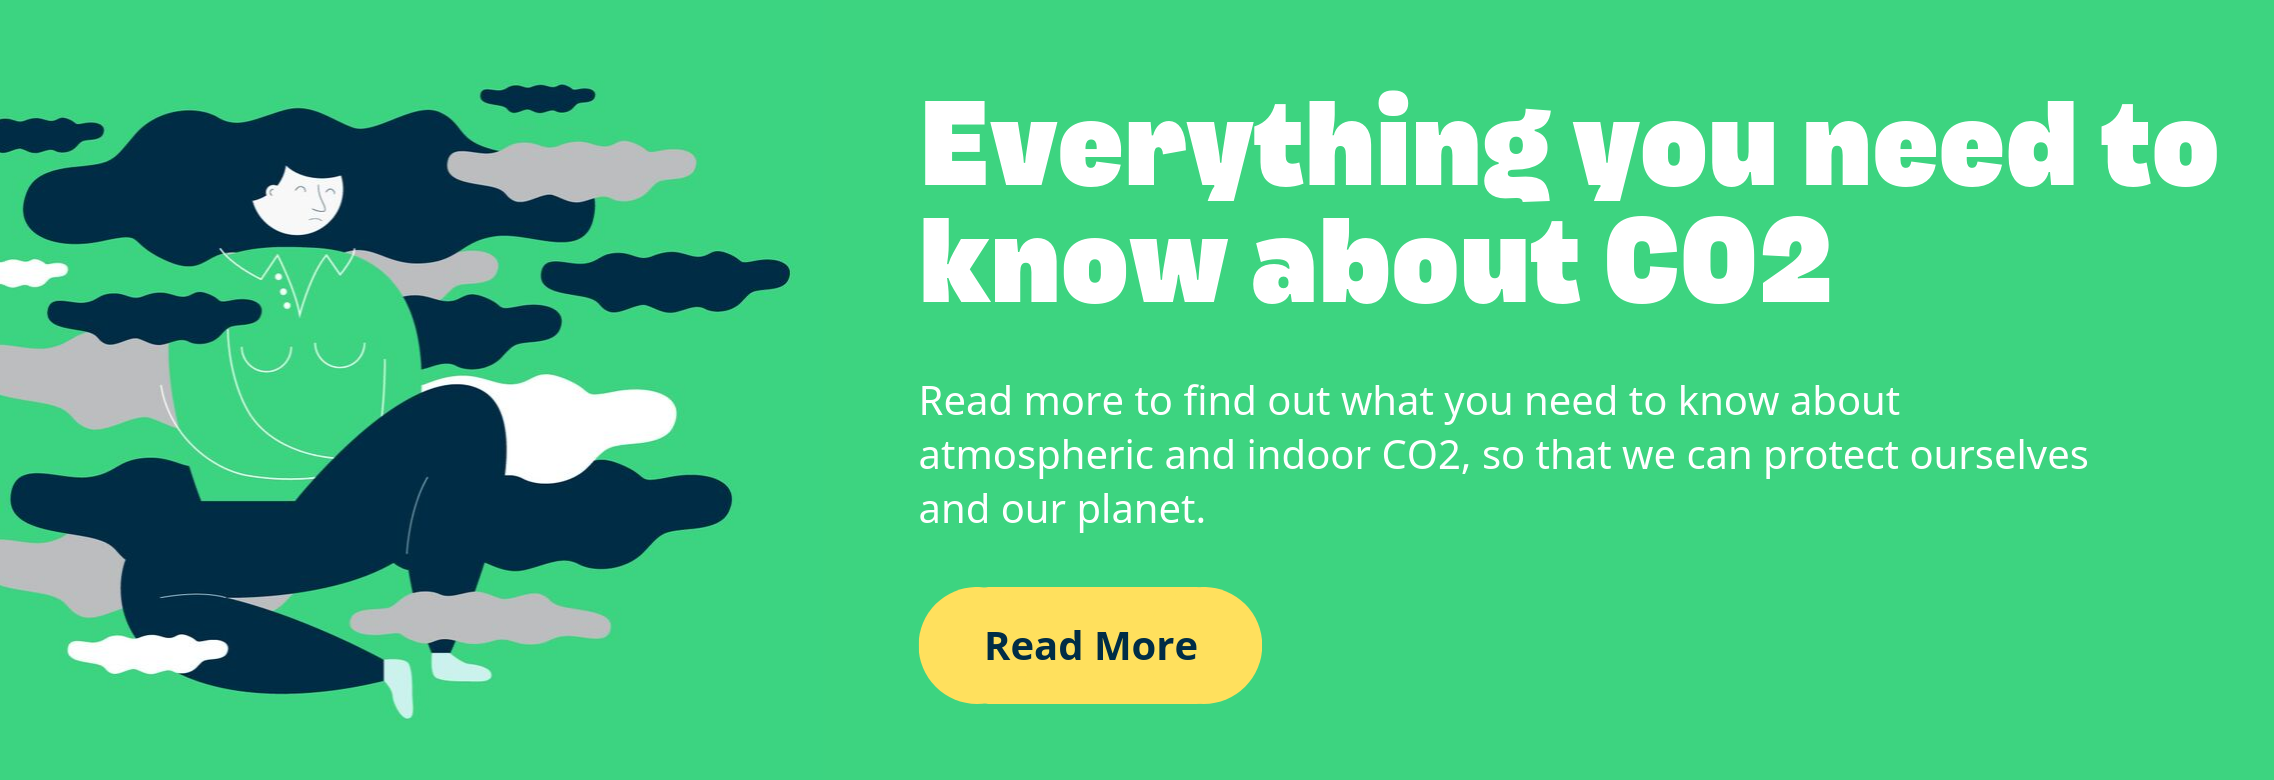 Everything you need to know about CO2